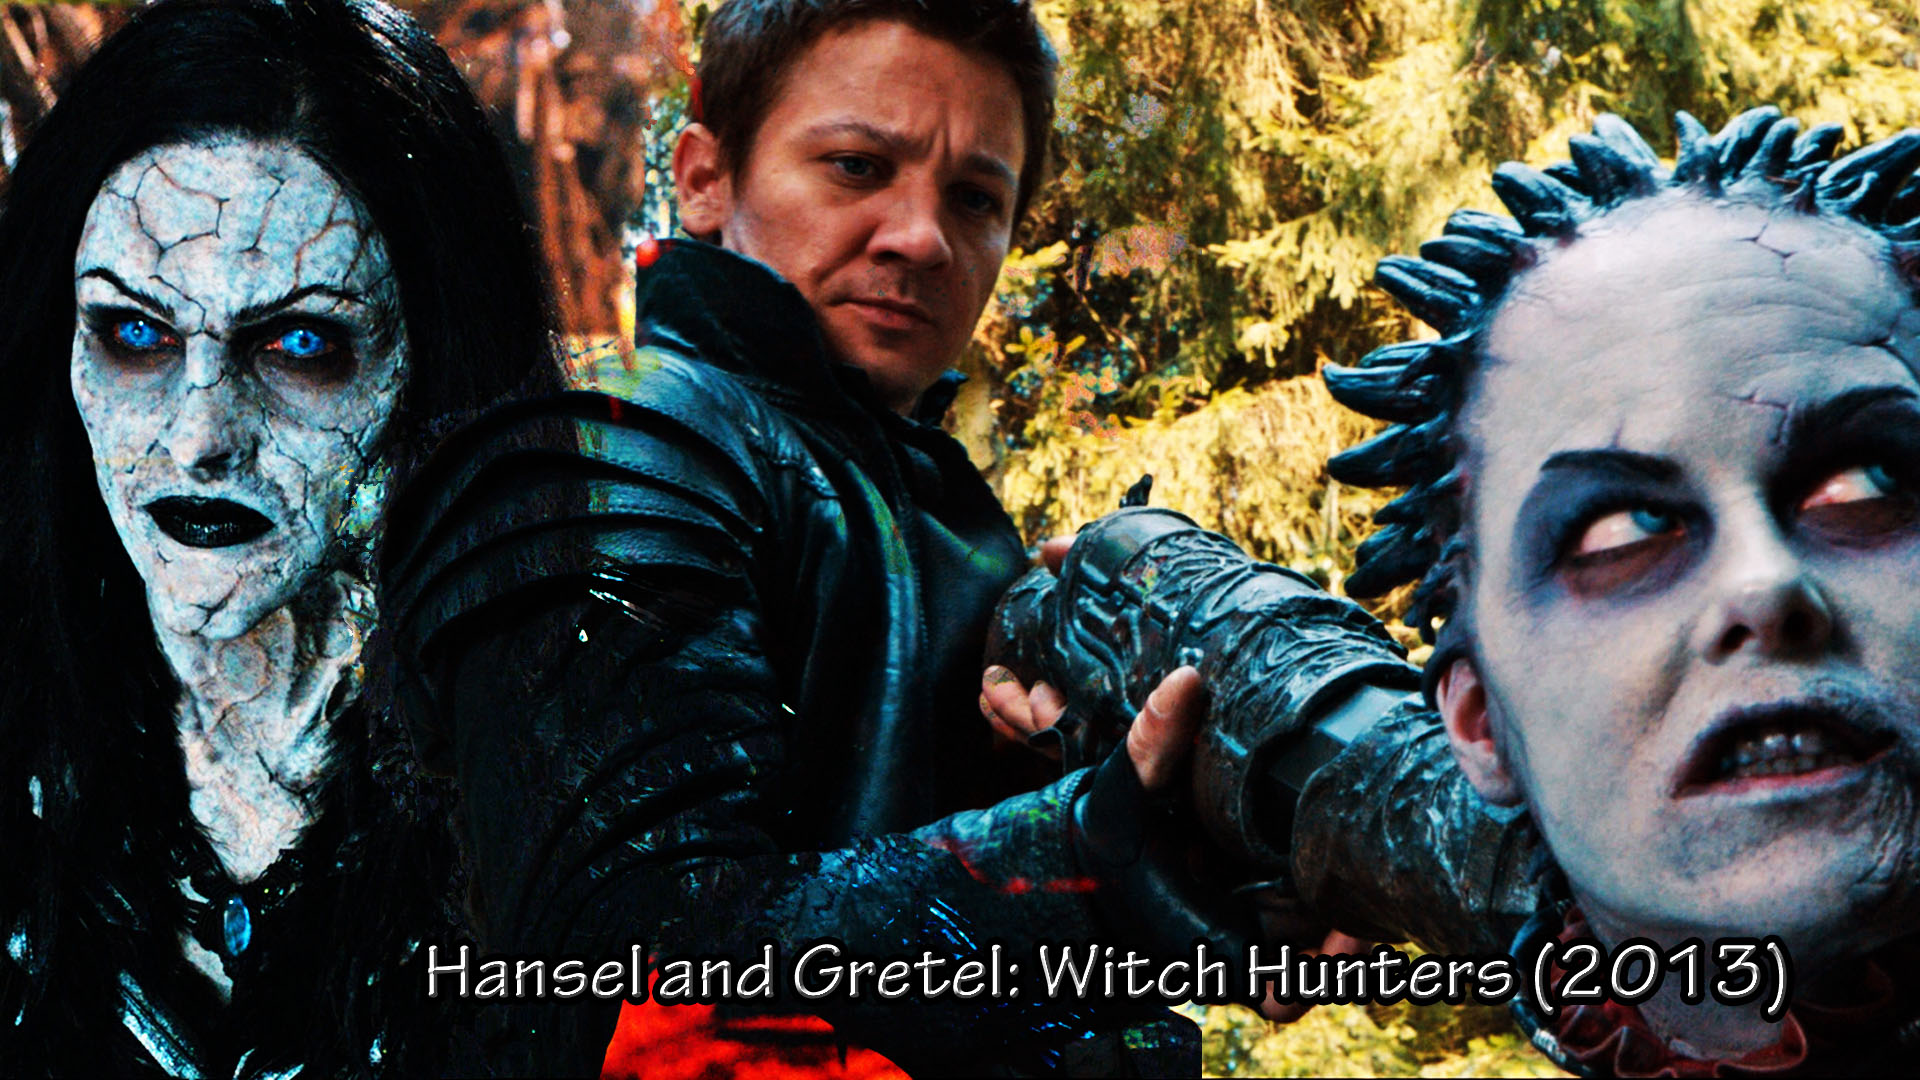 Free download hansel and gretel witch hunters hd movie wallpaper #2.